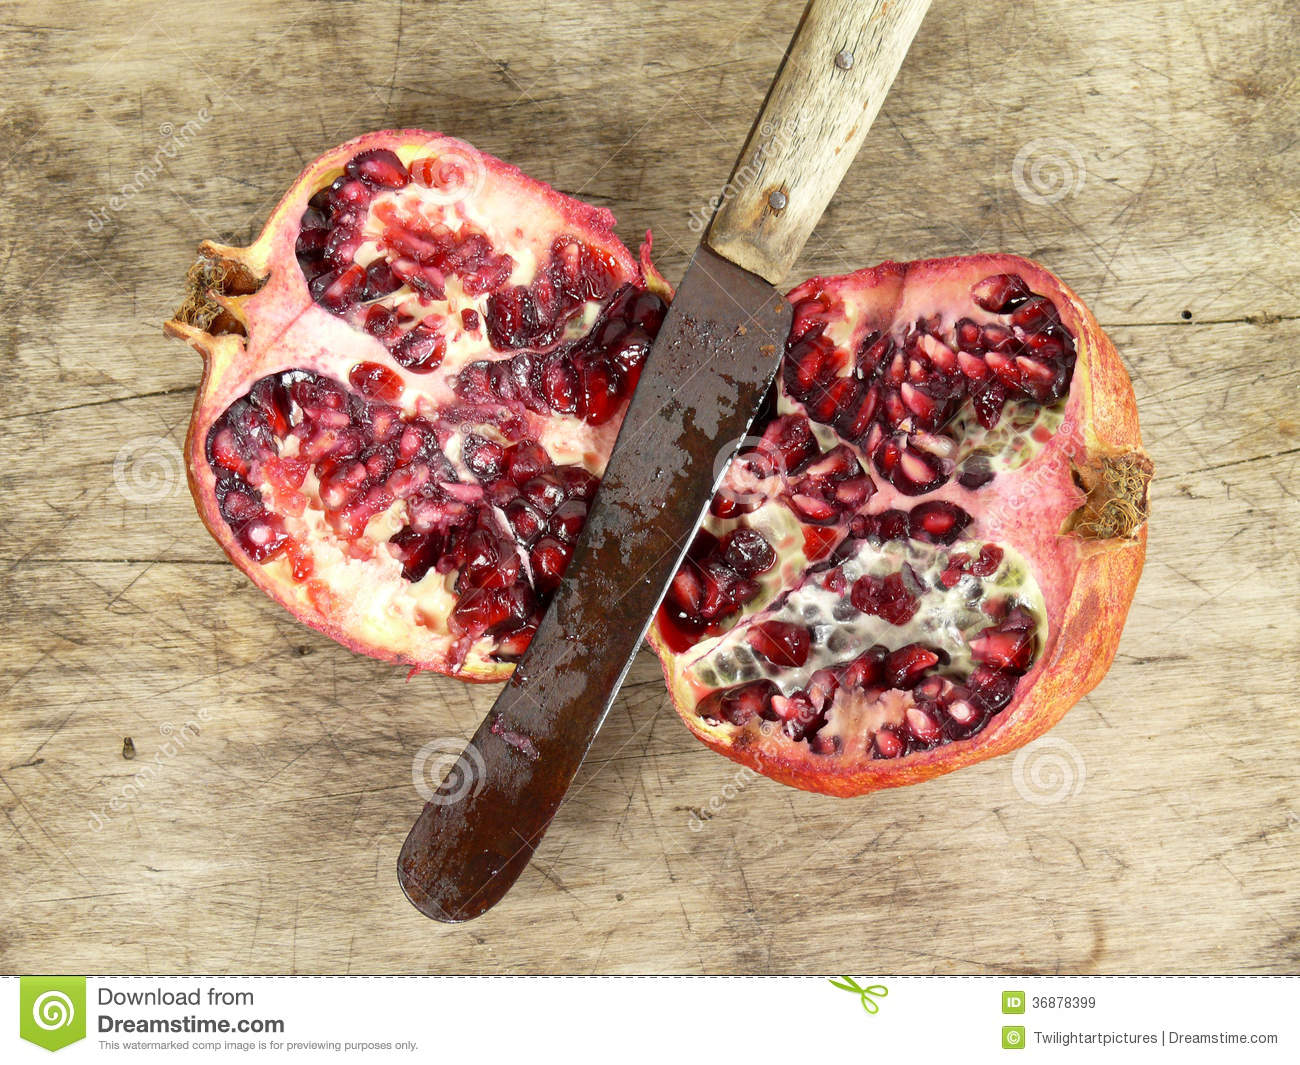 Download Melograno immagine stock. Immagine di frutta, fell, vita - 36878399